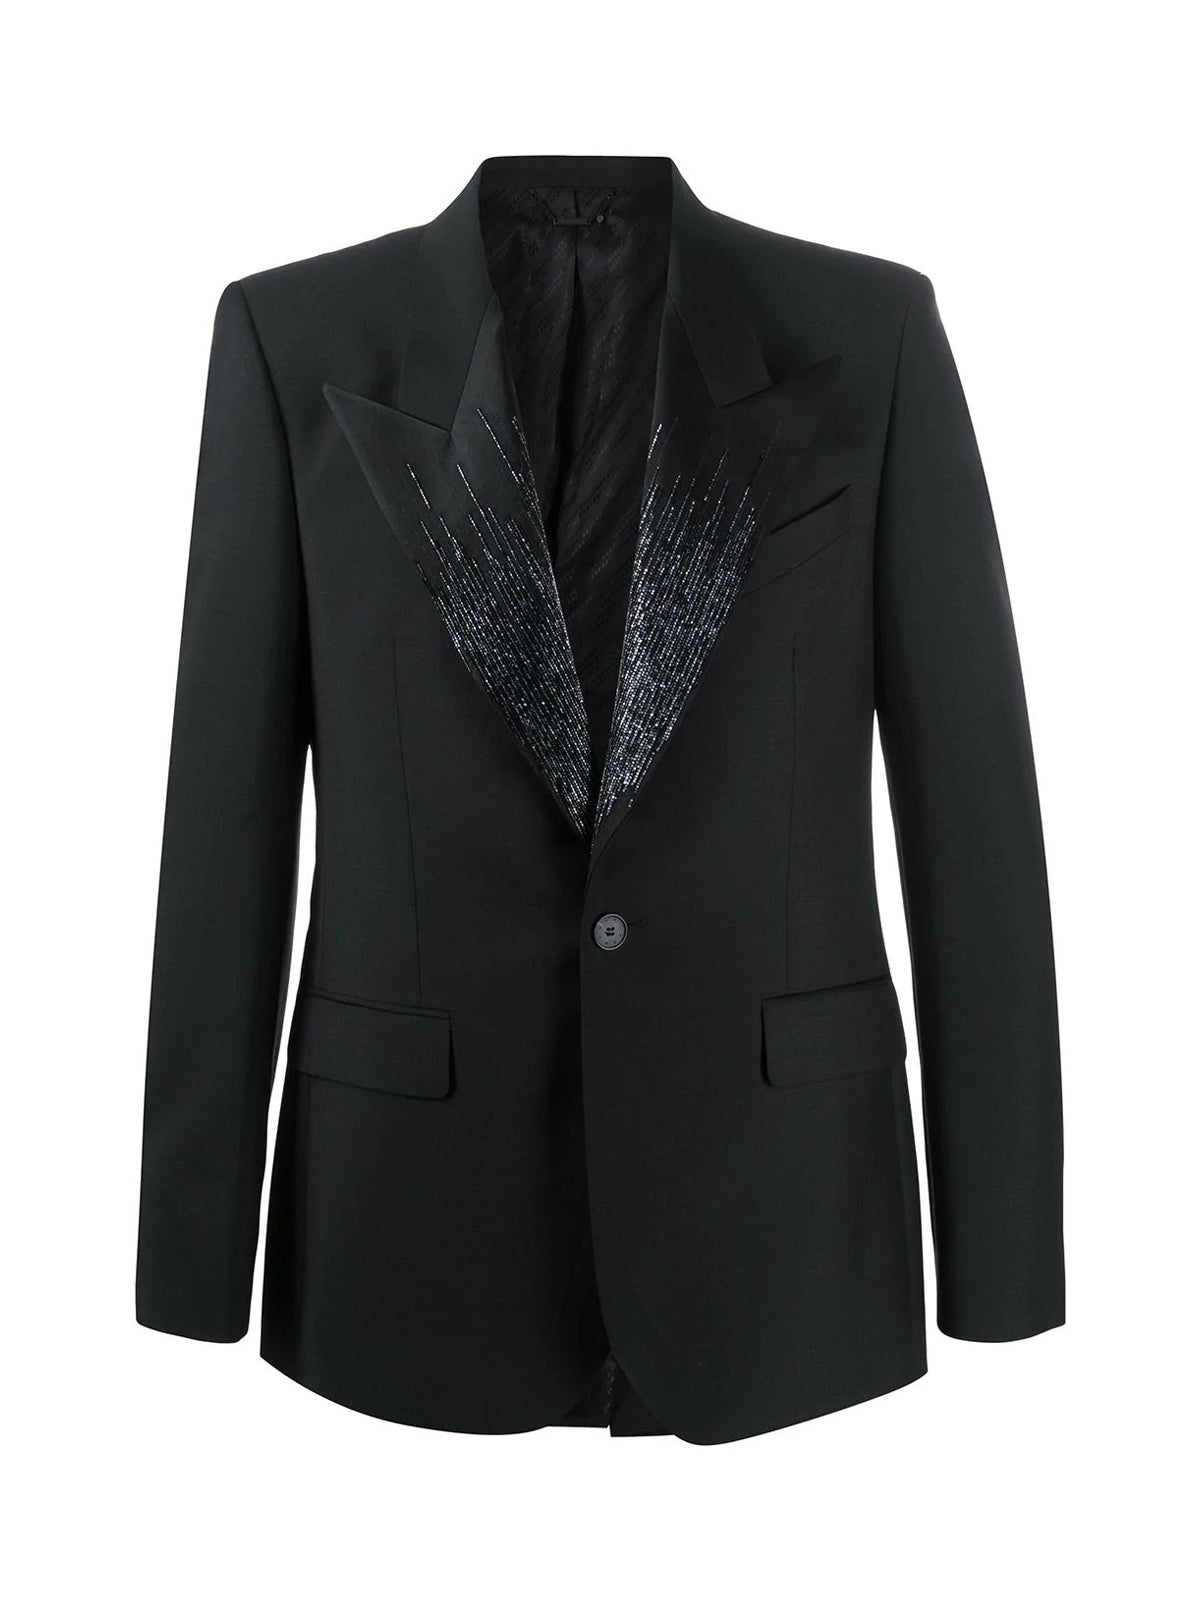 TUXEDO JACKET WITH COLLAR DETAIL